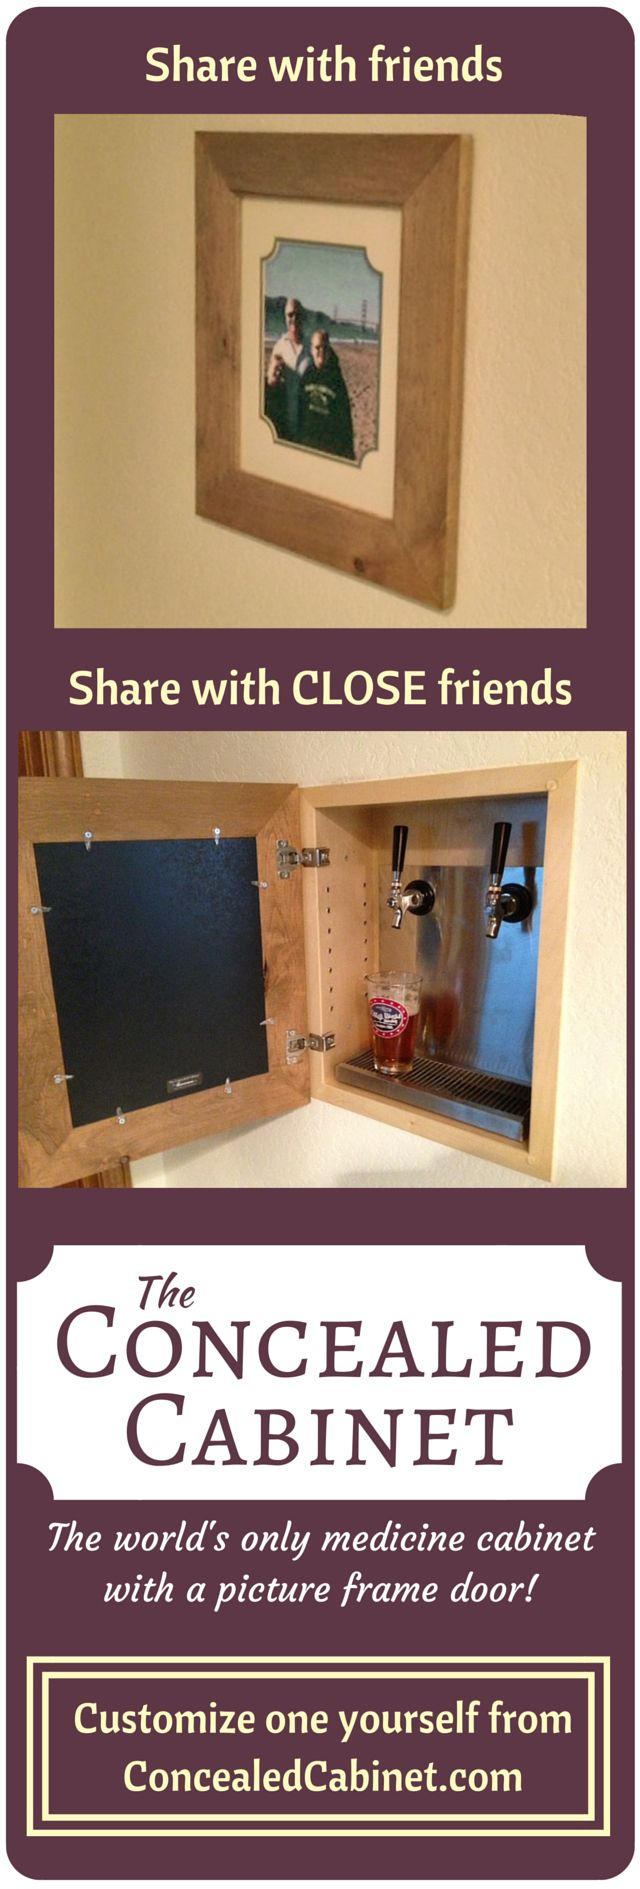 Friends in your home see a nice picture of your family. CLOSE friends find out you've got a sweet beer tap inside!  This customer customized their Concealed Cabinet and the results are fantastic! Check out our site to see all 50+ varieties and customize your own!